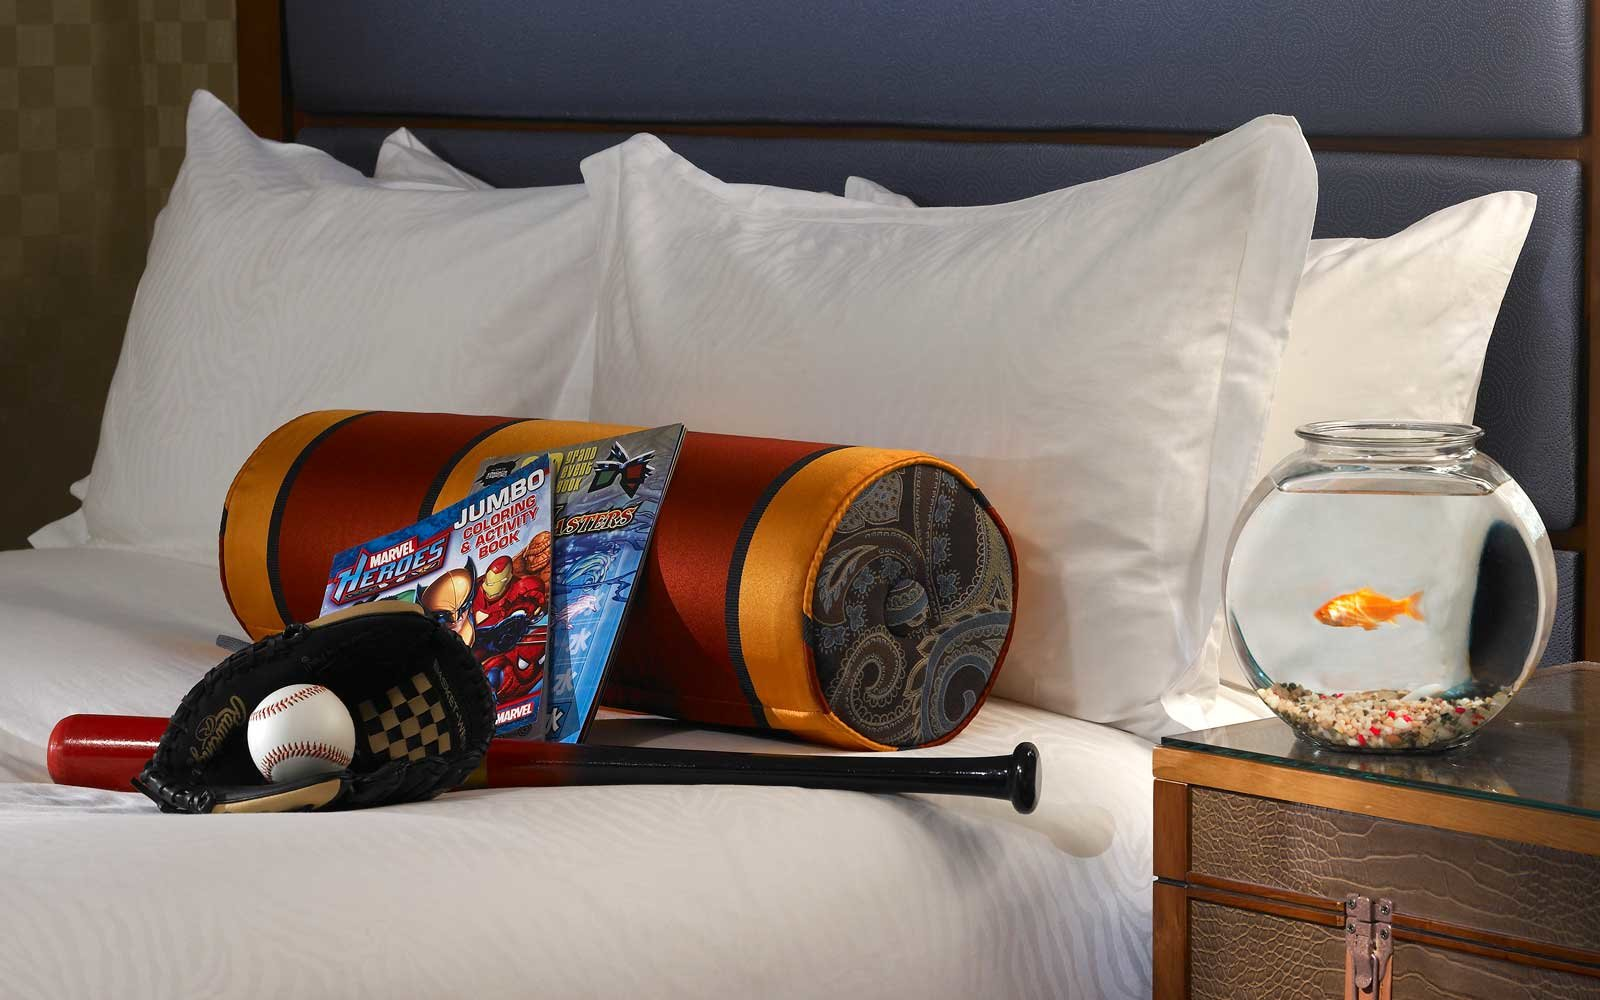 Wildest, Strangest, and Most Over-the-Top Hotel Amenities